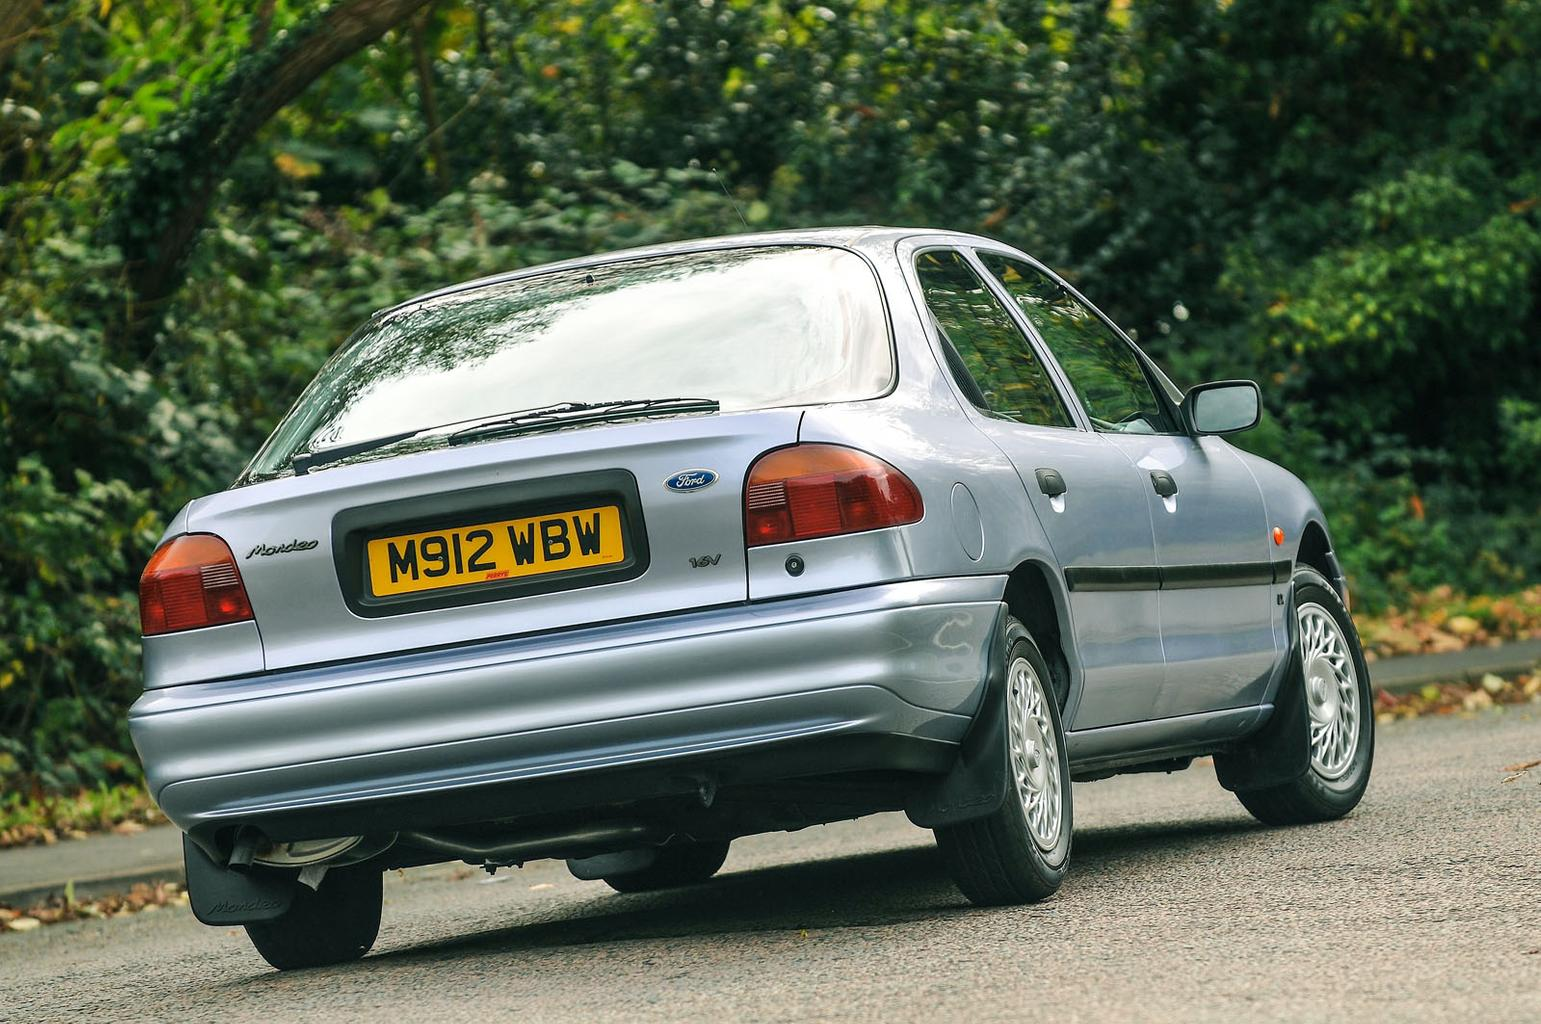 1993 Ford Mondeo 1.8 GLX – Rewind Wednesday